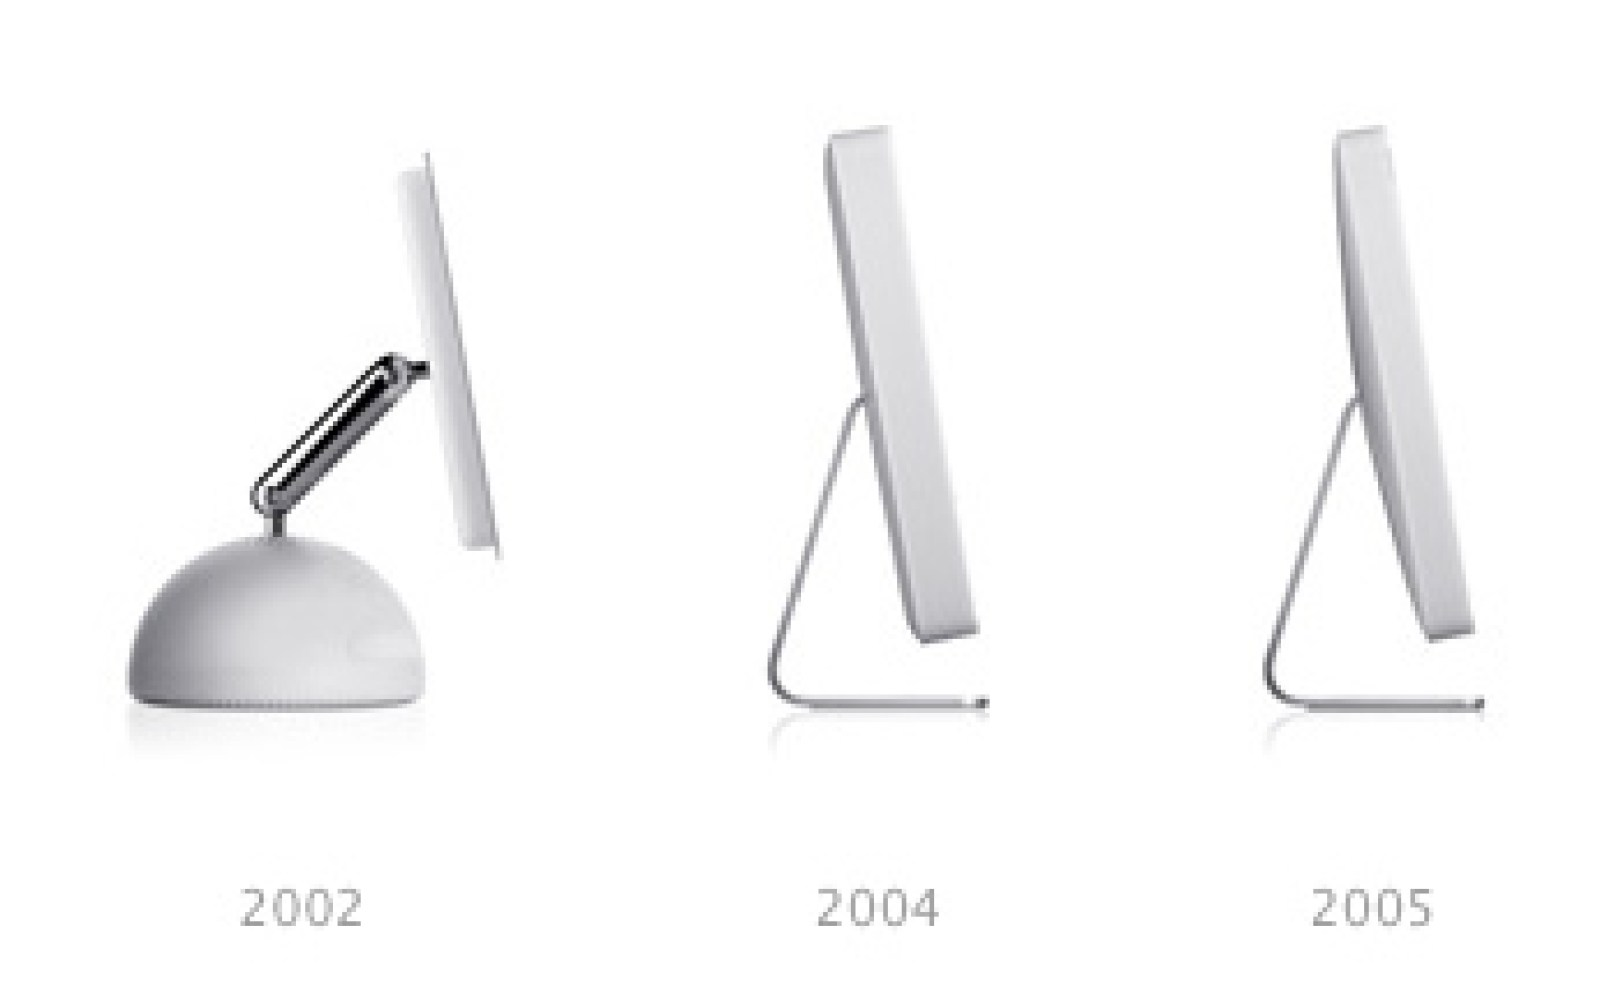 Opinion: A Mac's longevity is its biggest unsung selling point